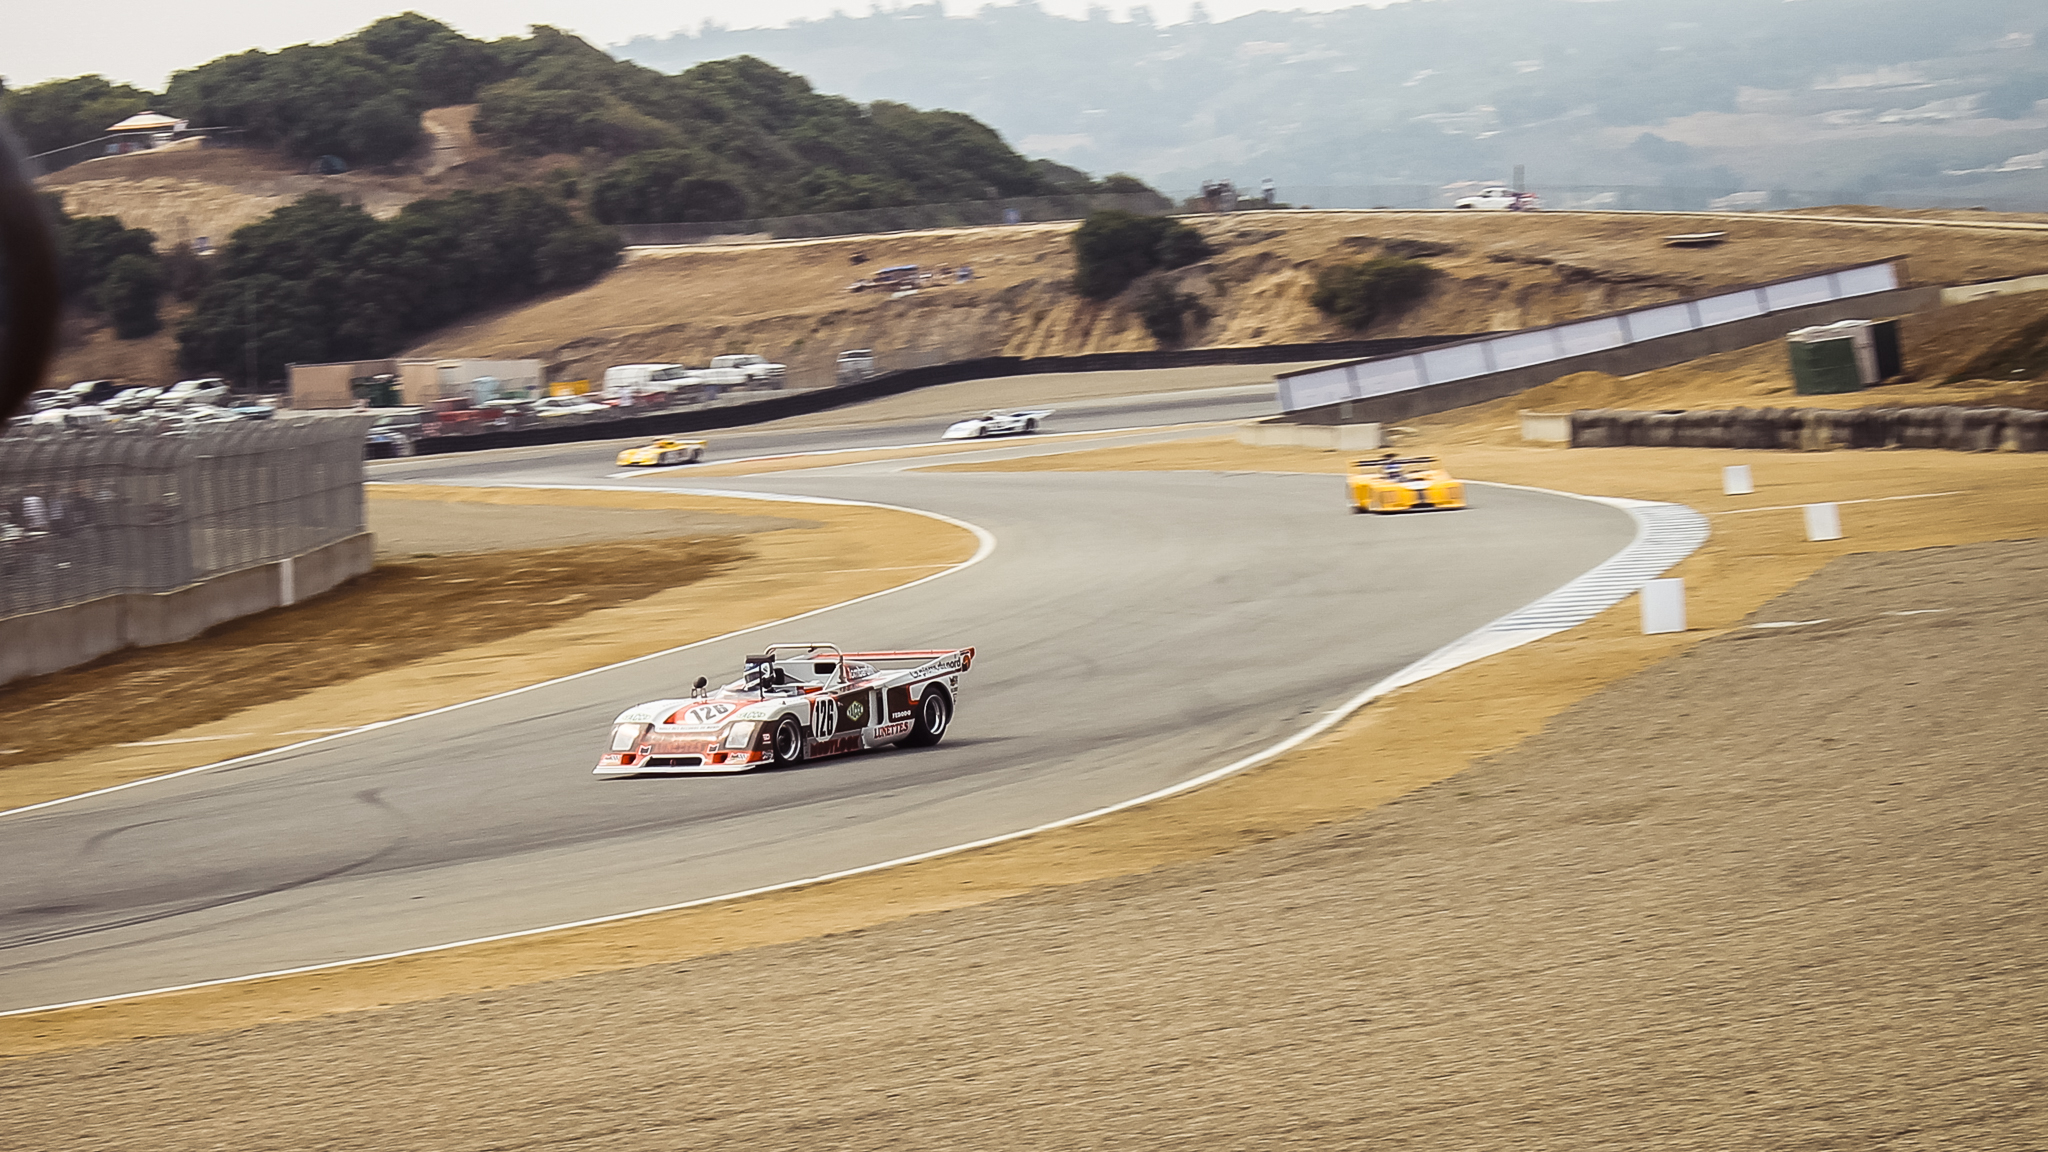 Vintage racers at Laguna Seca during 7th Motorsports Reunion | Nicole James photo